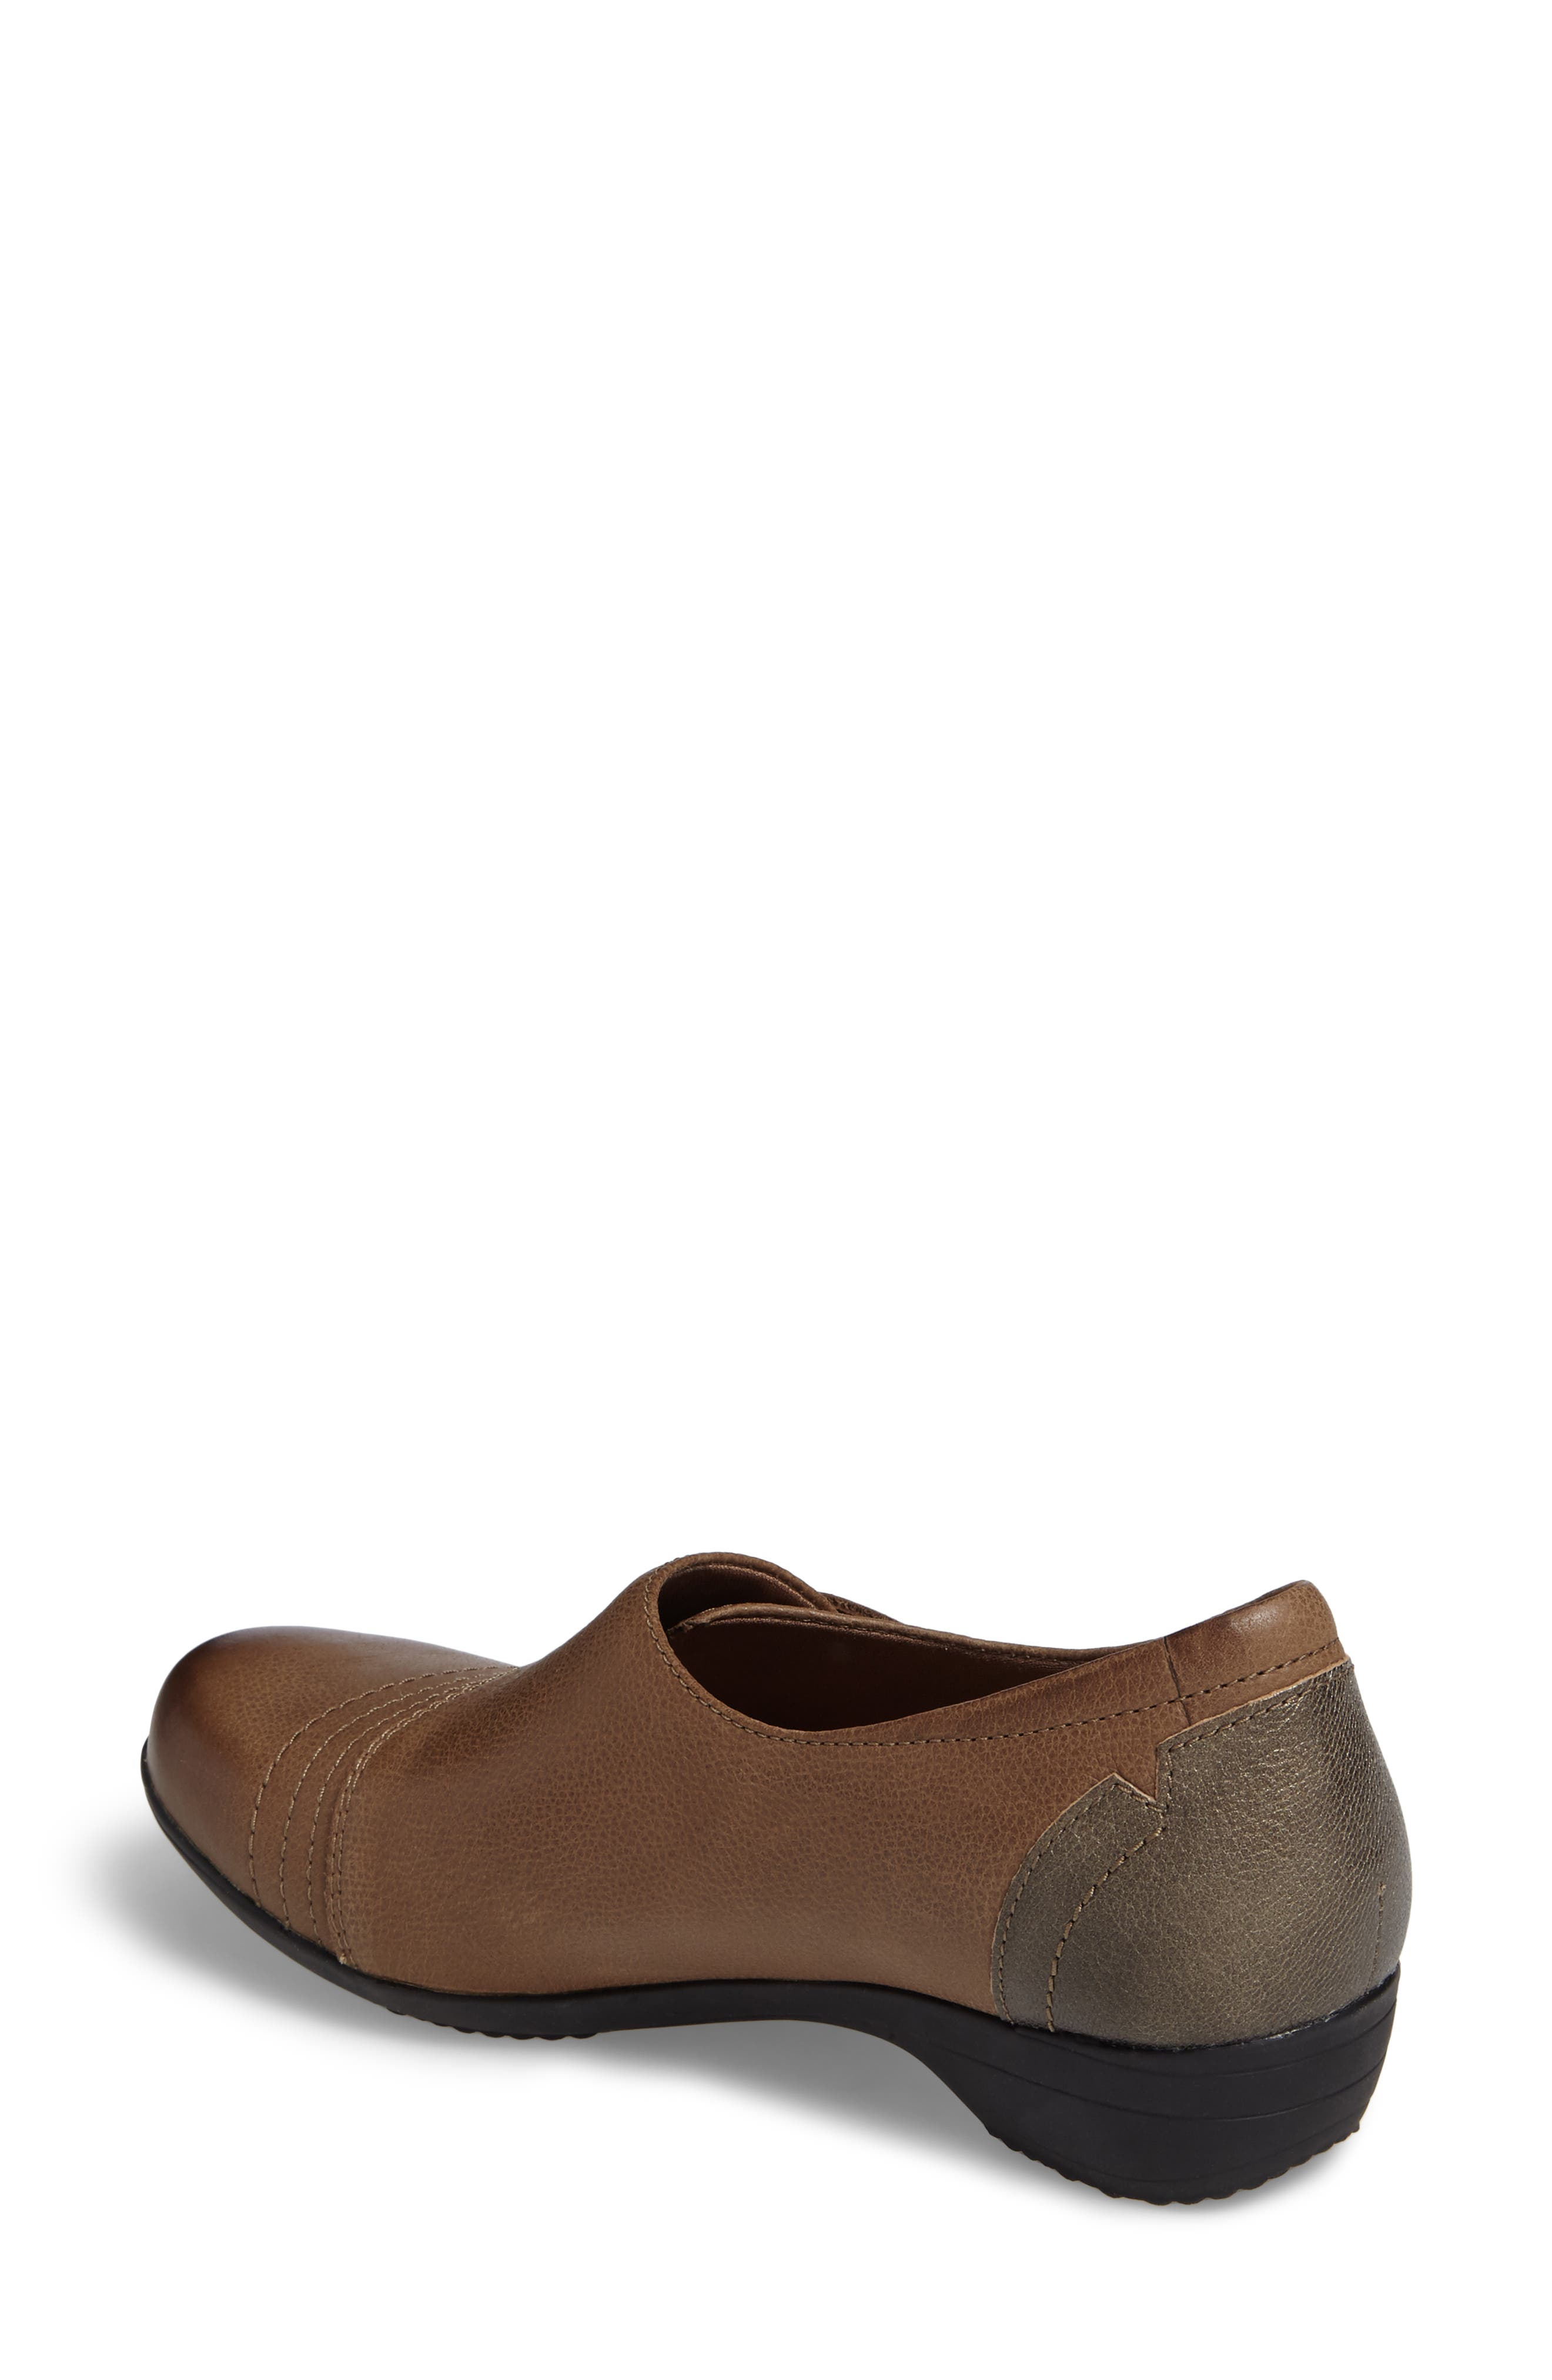 Franny Loafer,                             Alternate thumbnail 2, color,                             Taupe Burnished Nappa Leather